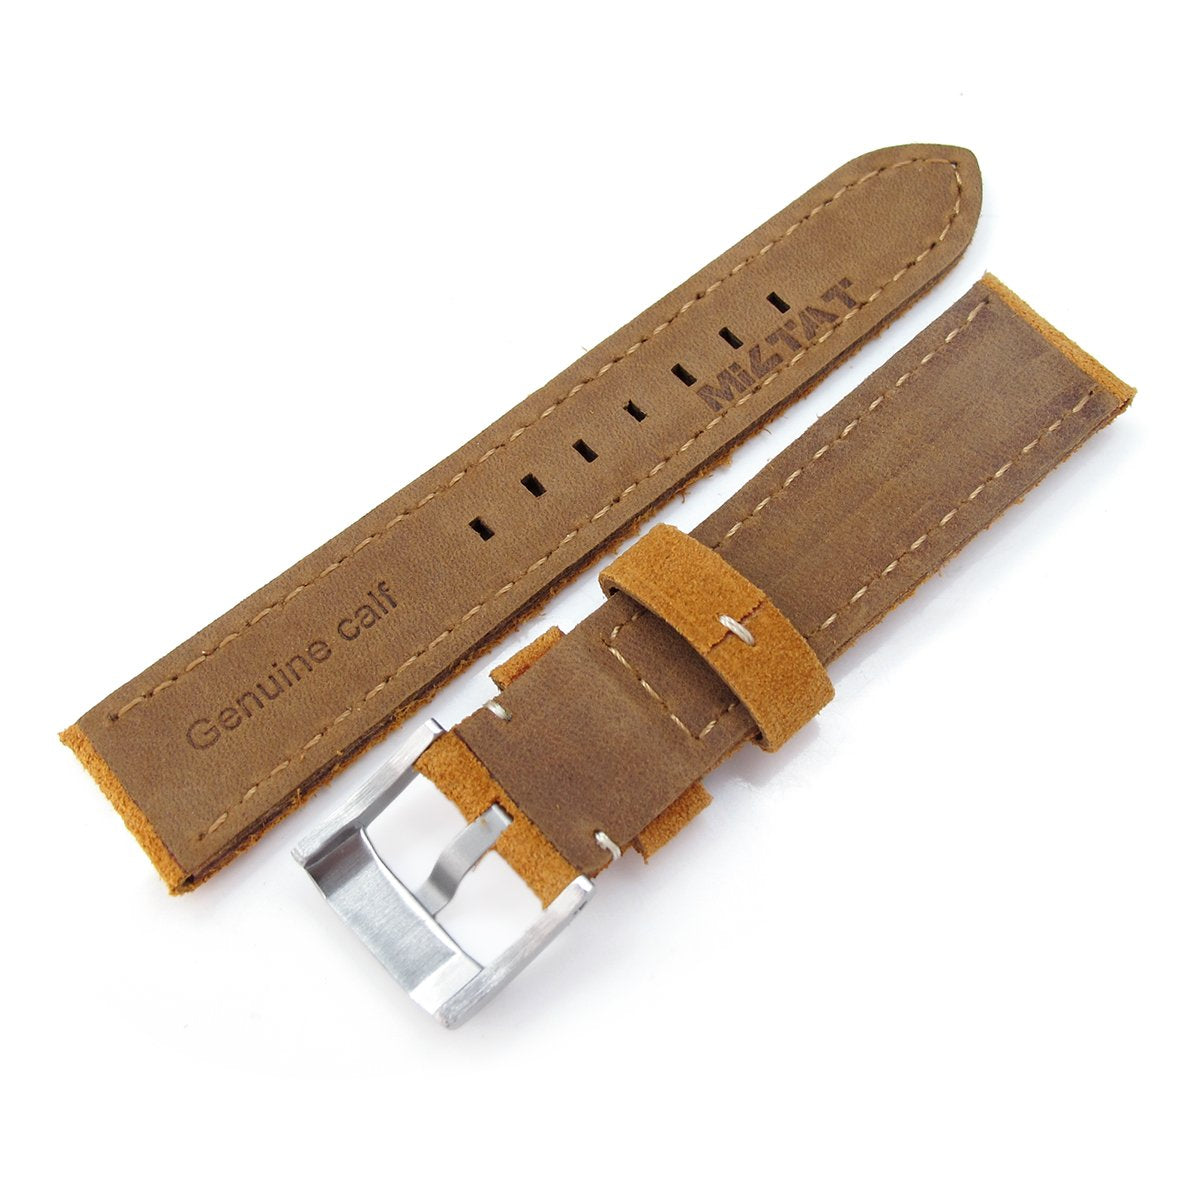 20mm 21mm MiLTAT Camel Brown Nubuck Leather Watch Band Beige Stitching Strapcode Watch Bands